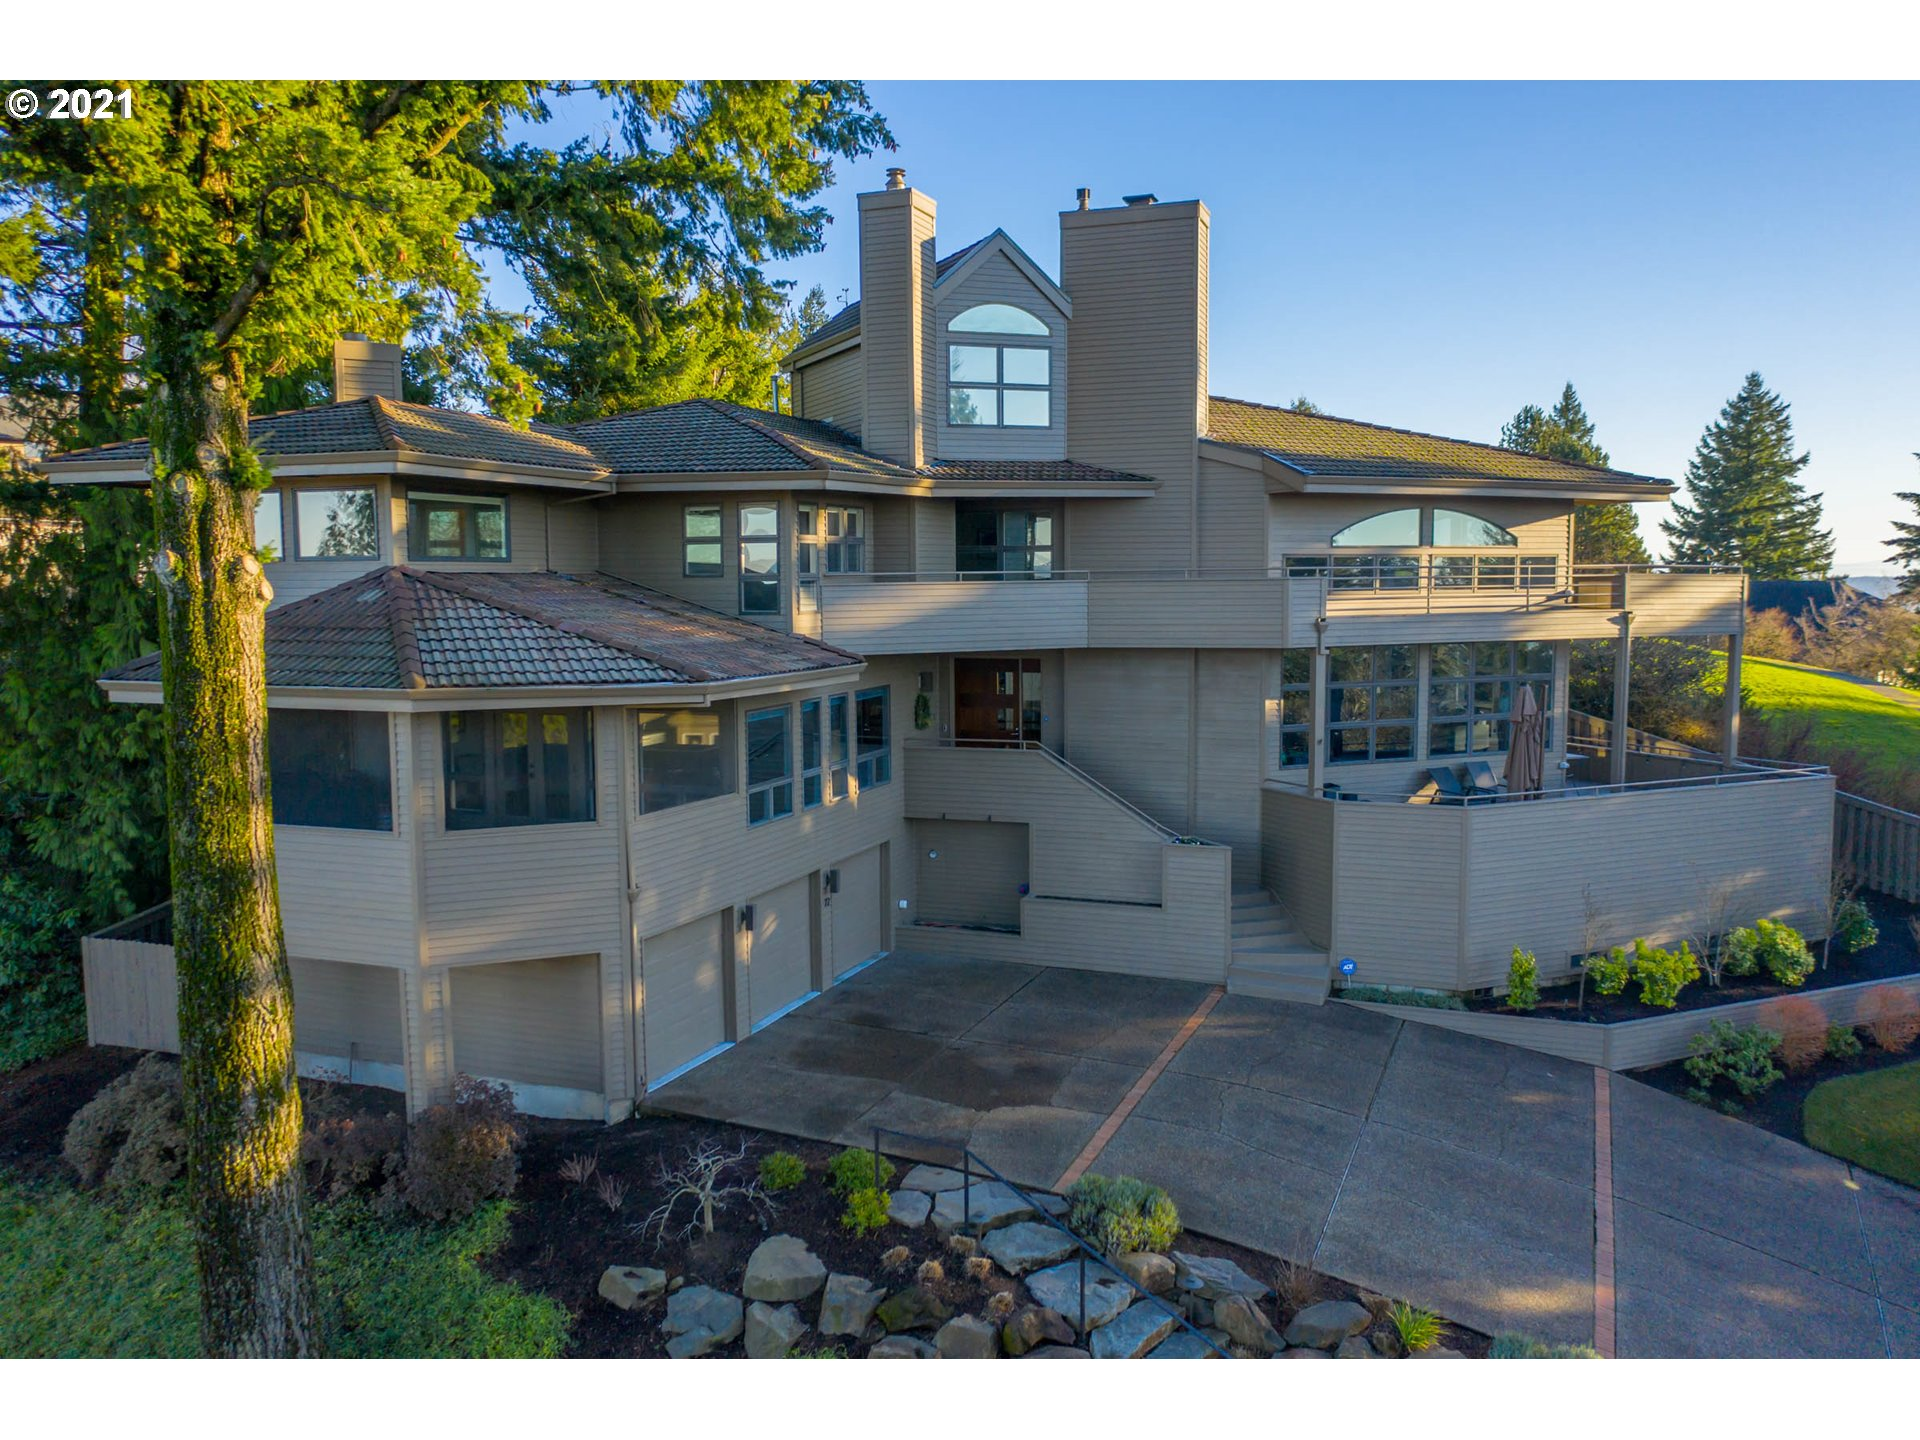 72 NANSEN SMT, Lake Oswego, OR 97035